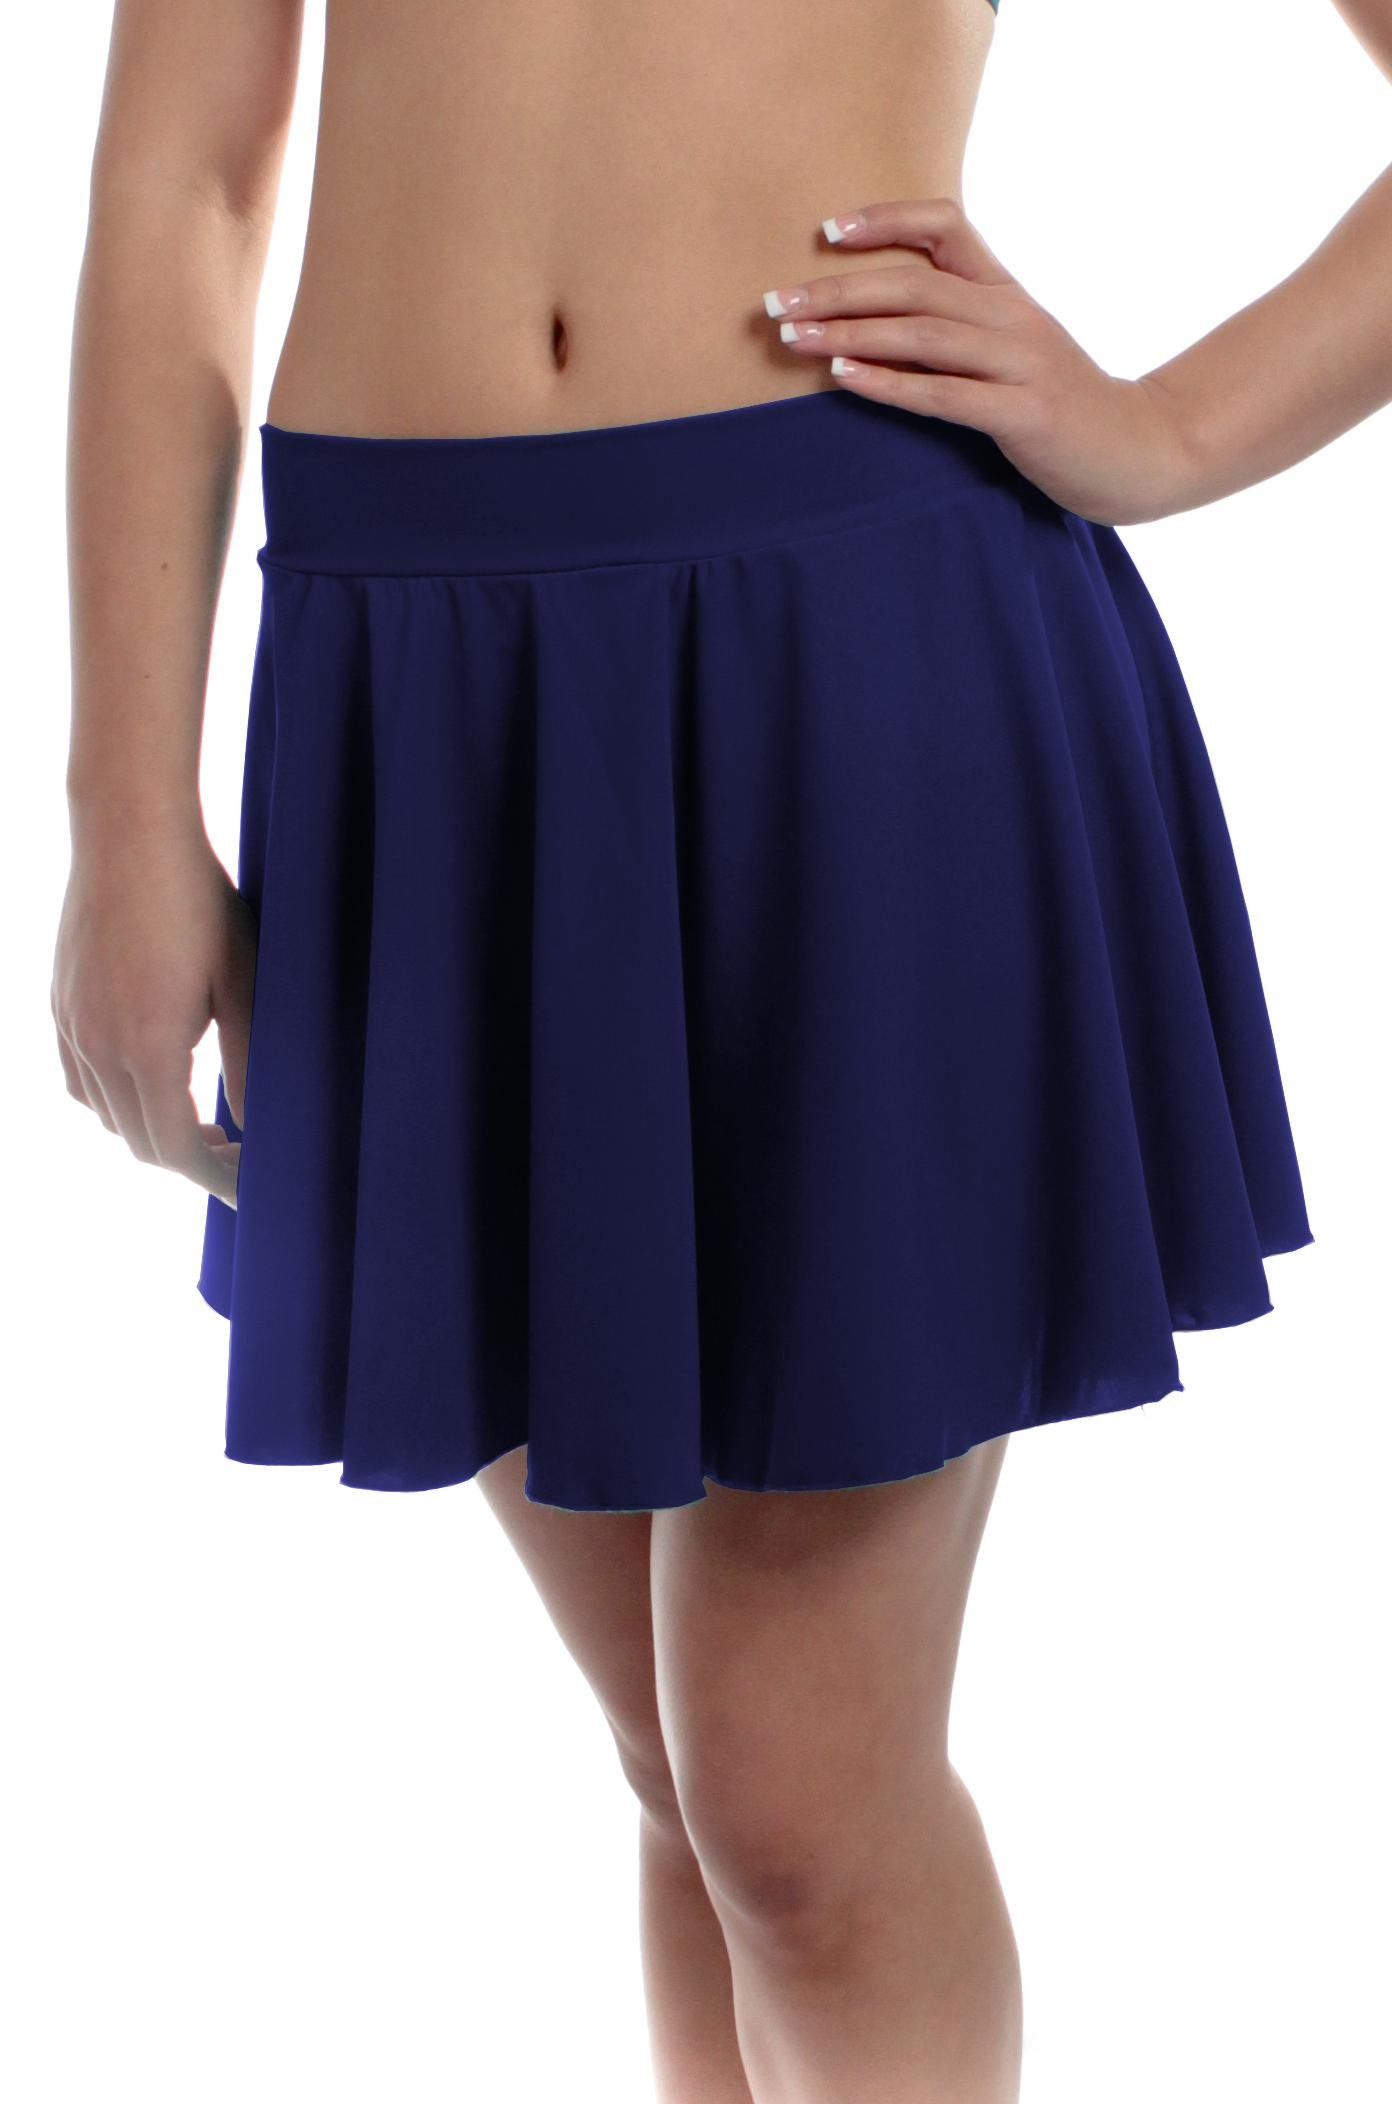 B Dancewear Girls Circle Dance Skirt Large Navy Child and Kid Sizes by B Dancewear